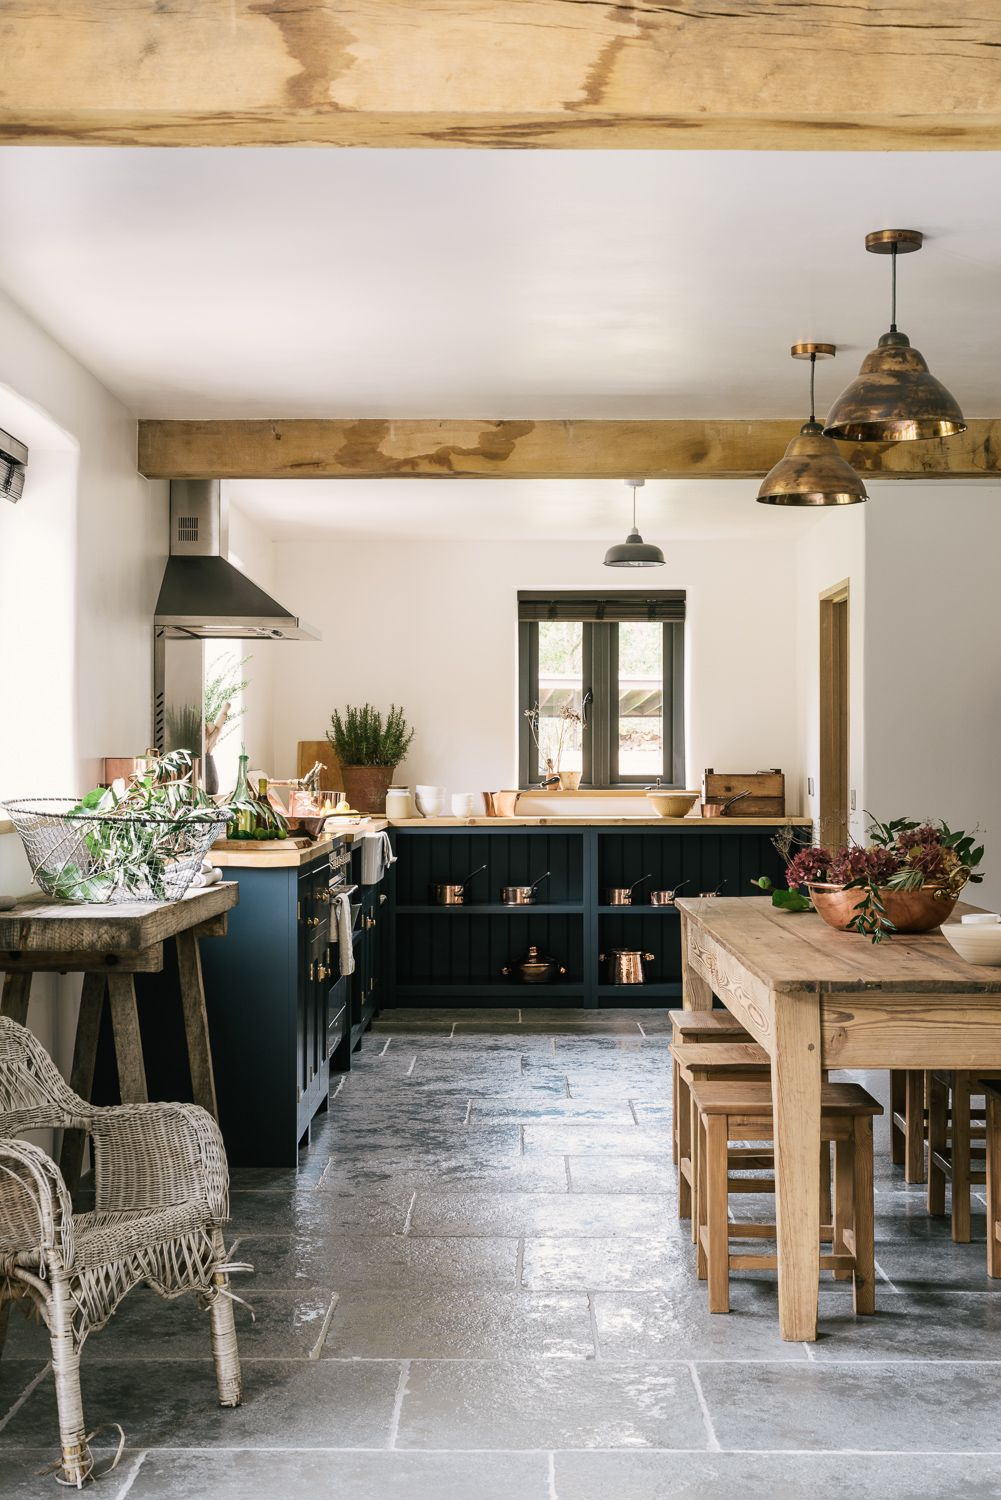 Country Kuechen A Stylish Country Kitchen By Devol With Worn Grey Limestone